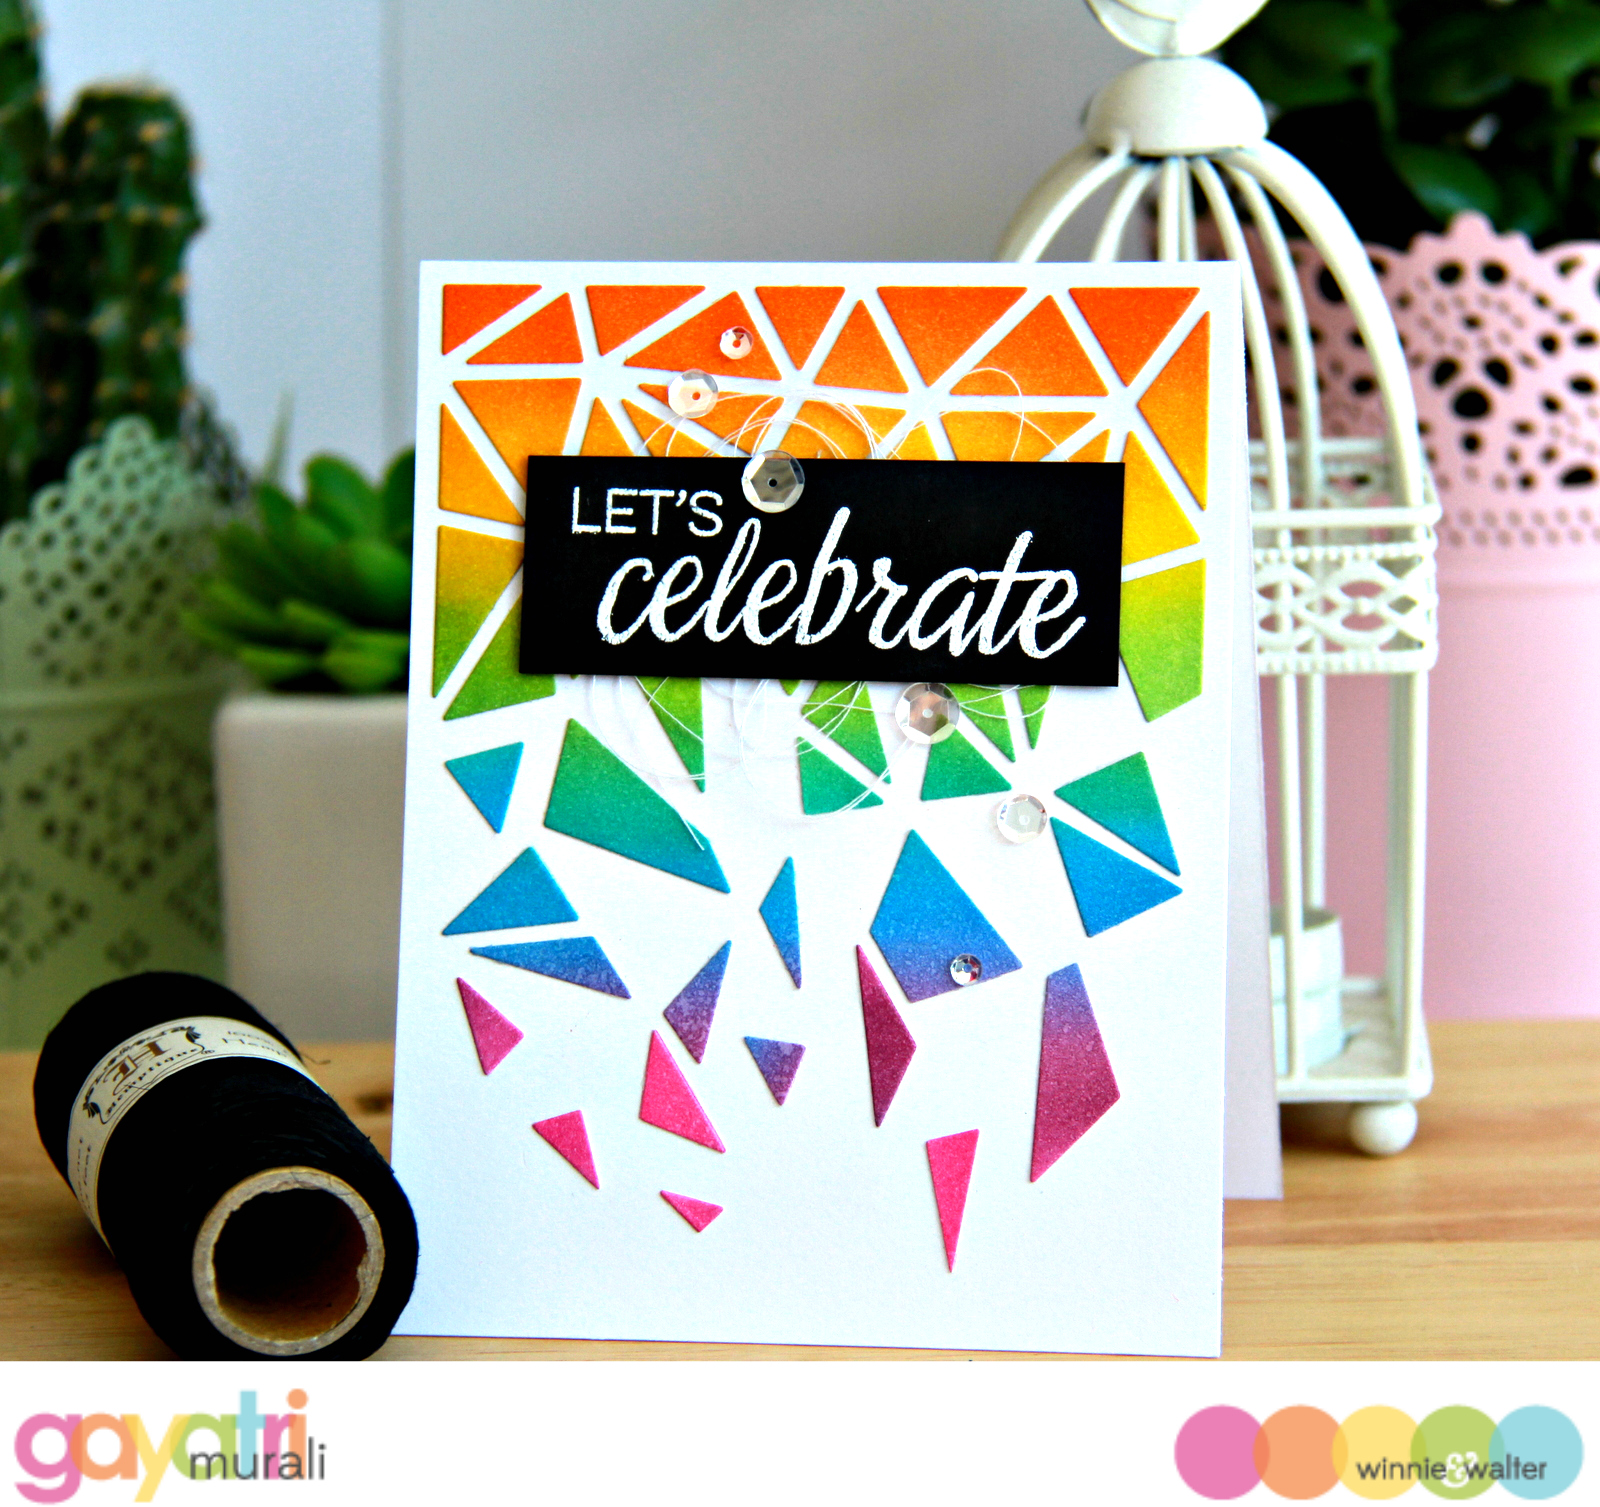 gayatri_Let's celebrate card 1